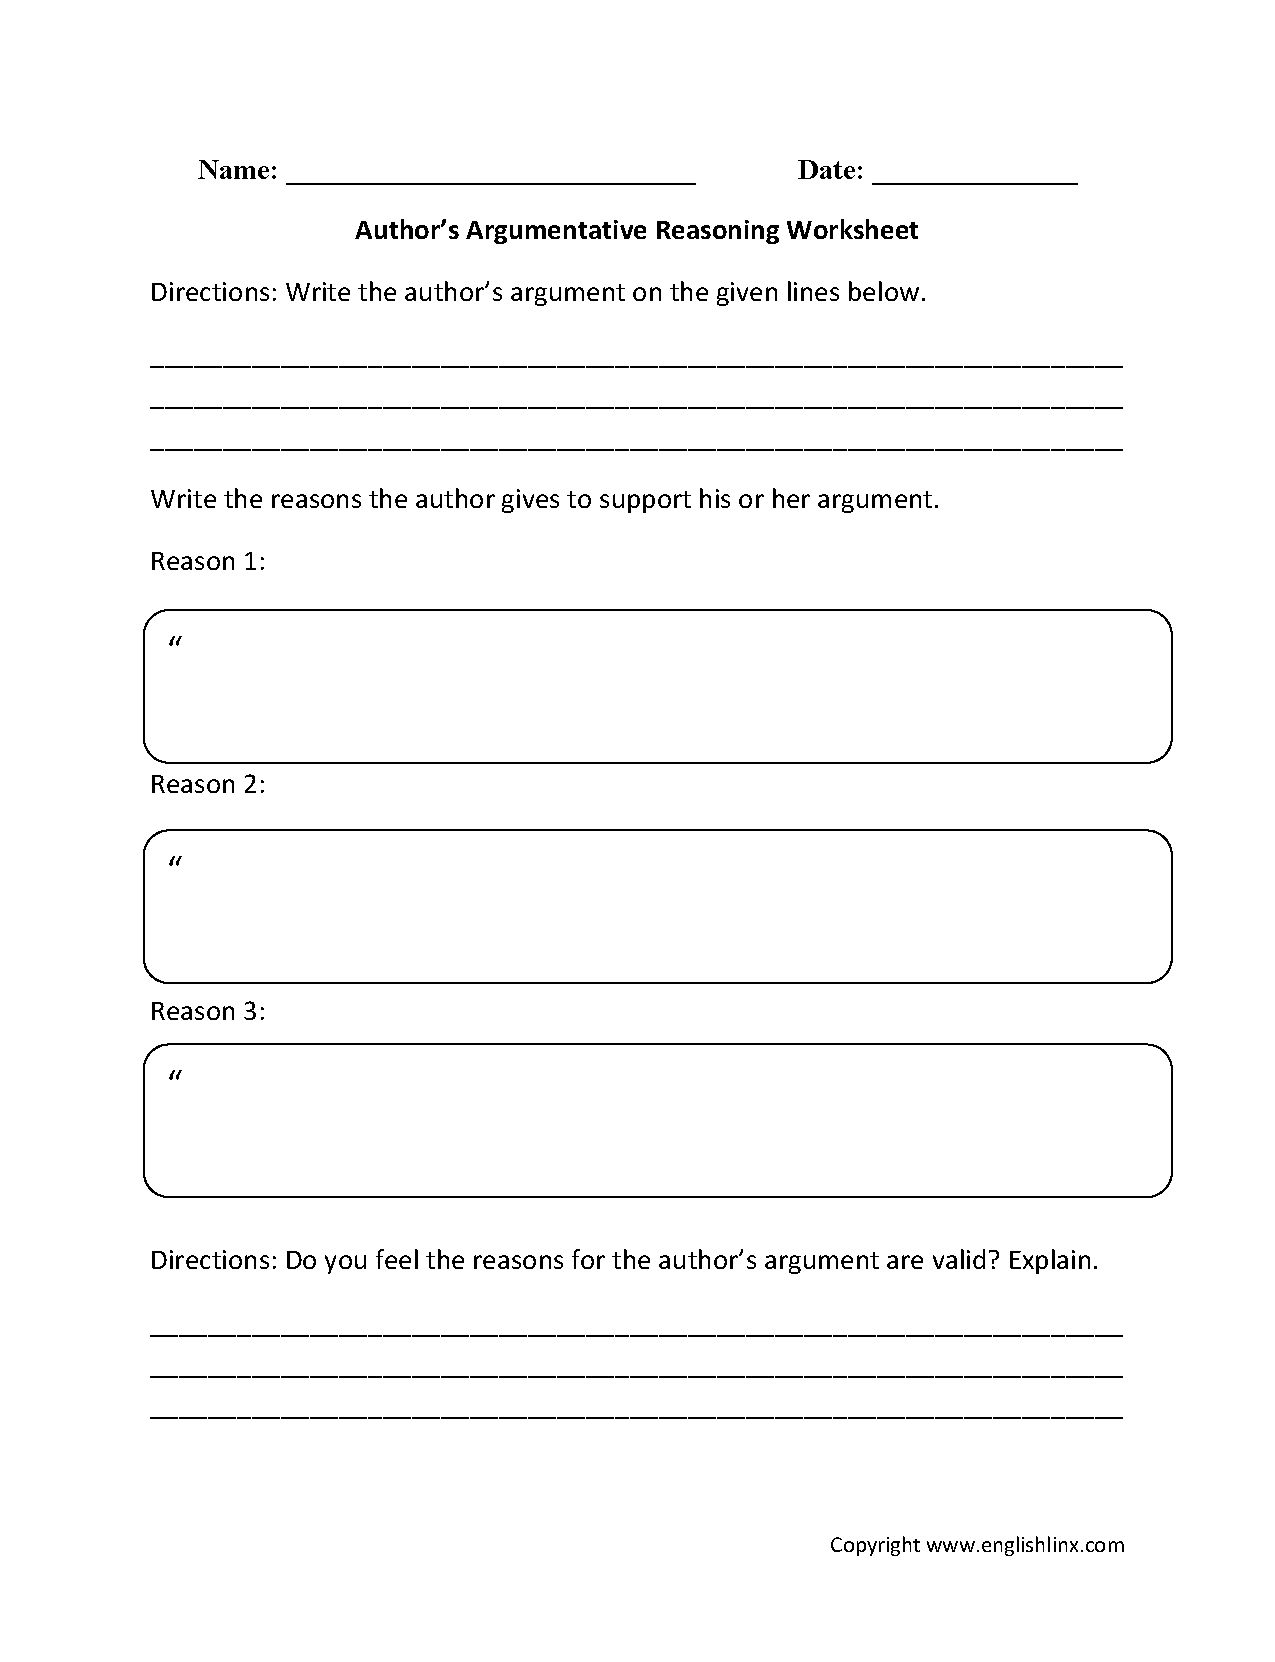 7x11 11th Grade English Worksheet